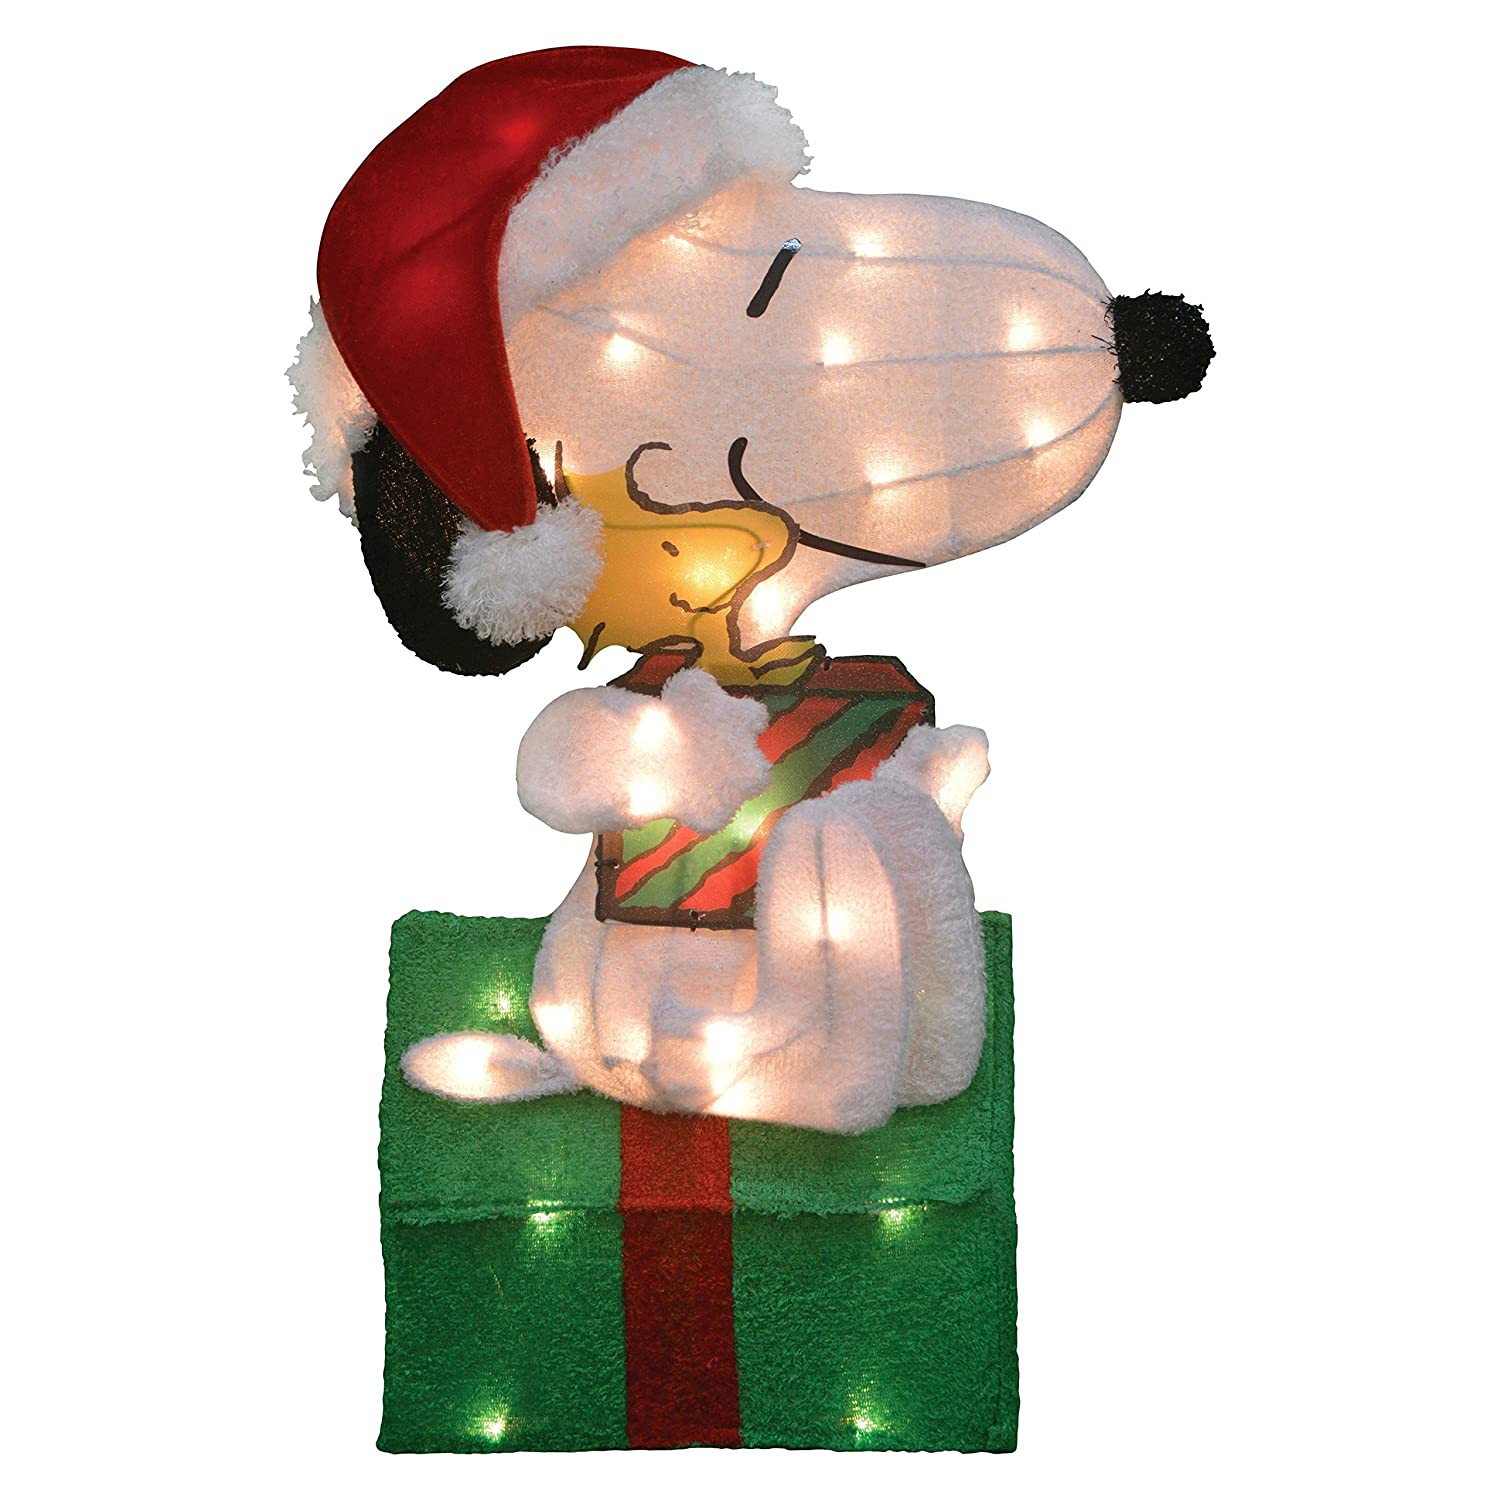 Snoopy outdoor christmas decorations - Amazon Com Christmas Peanuts Snoopy And Woodstock Pre Lit Yard Art 24 Tall Everything Else